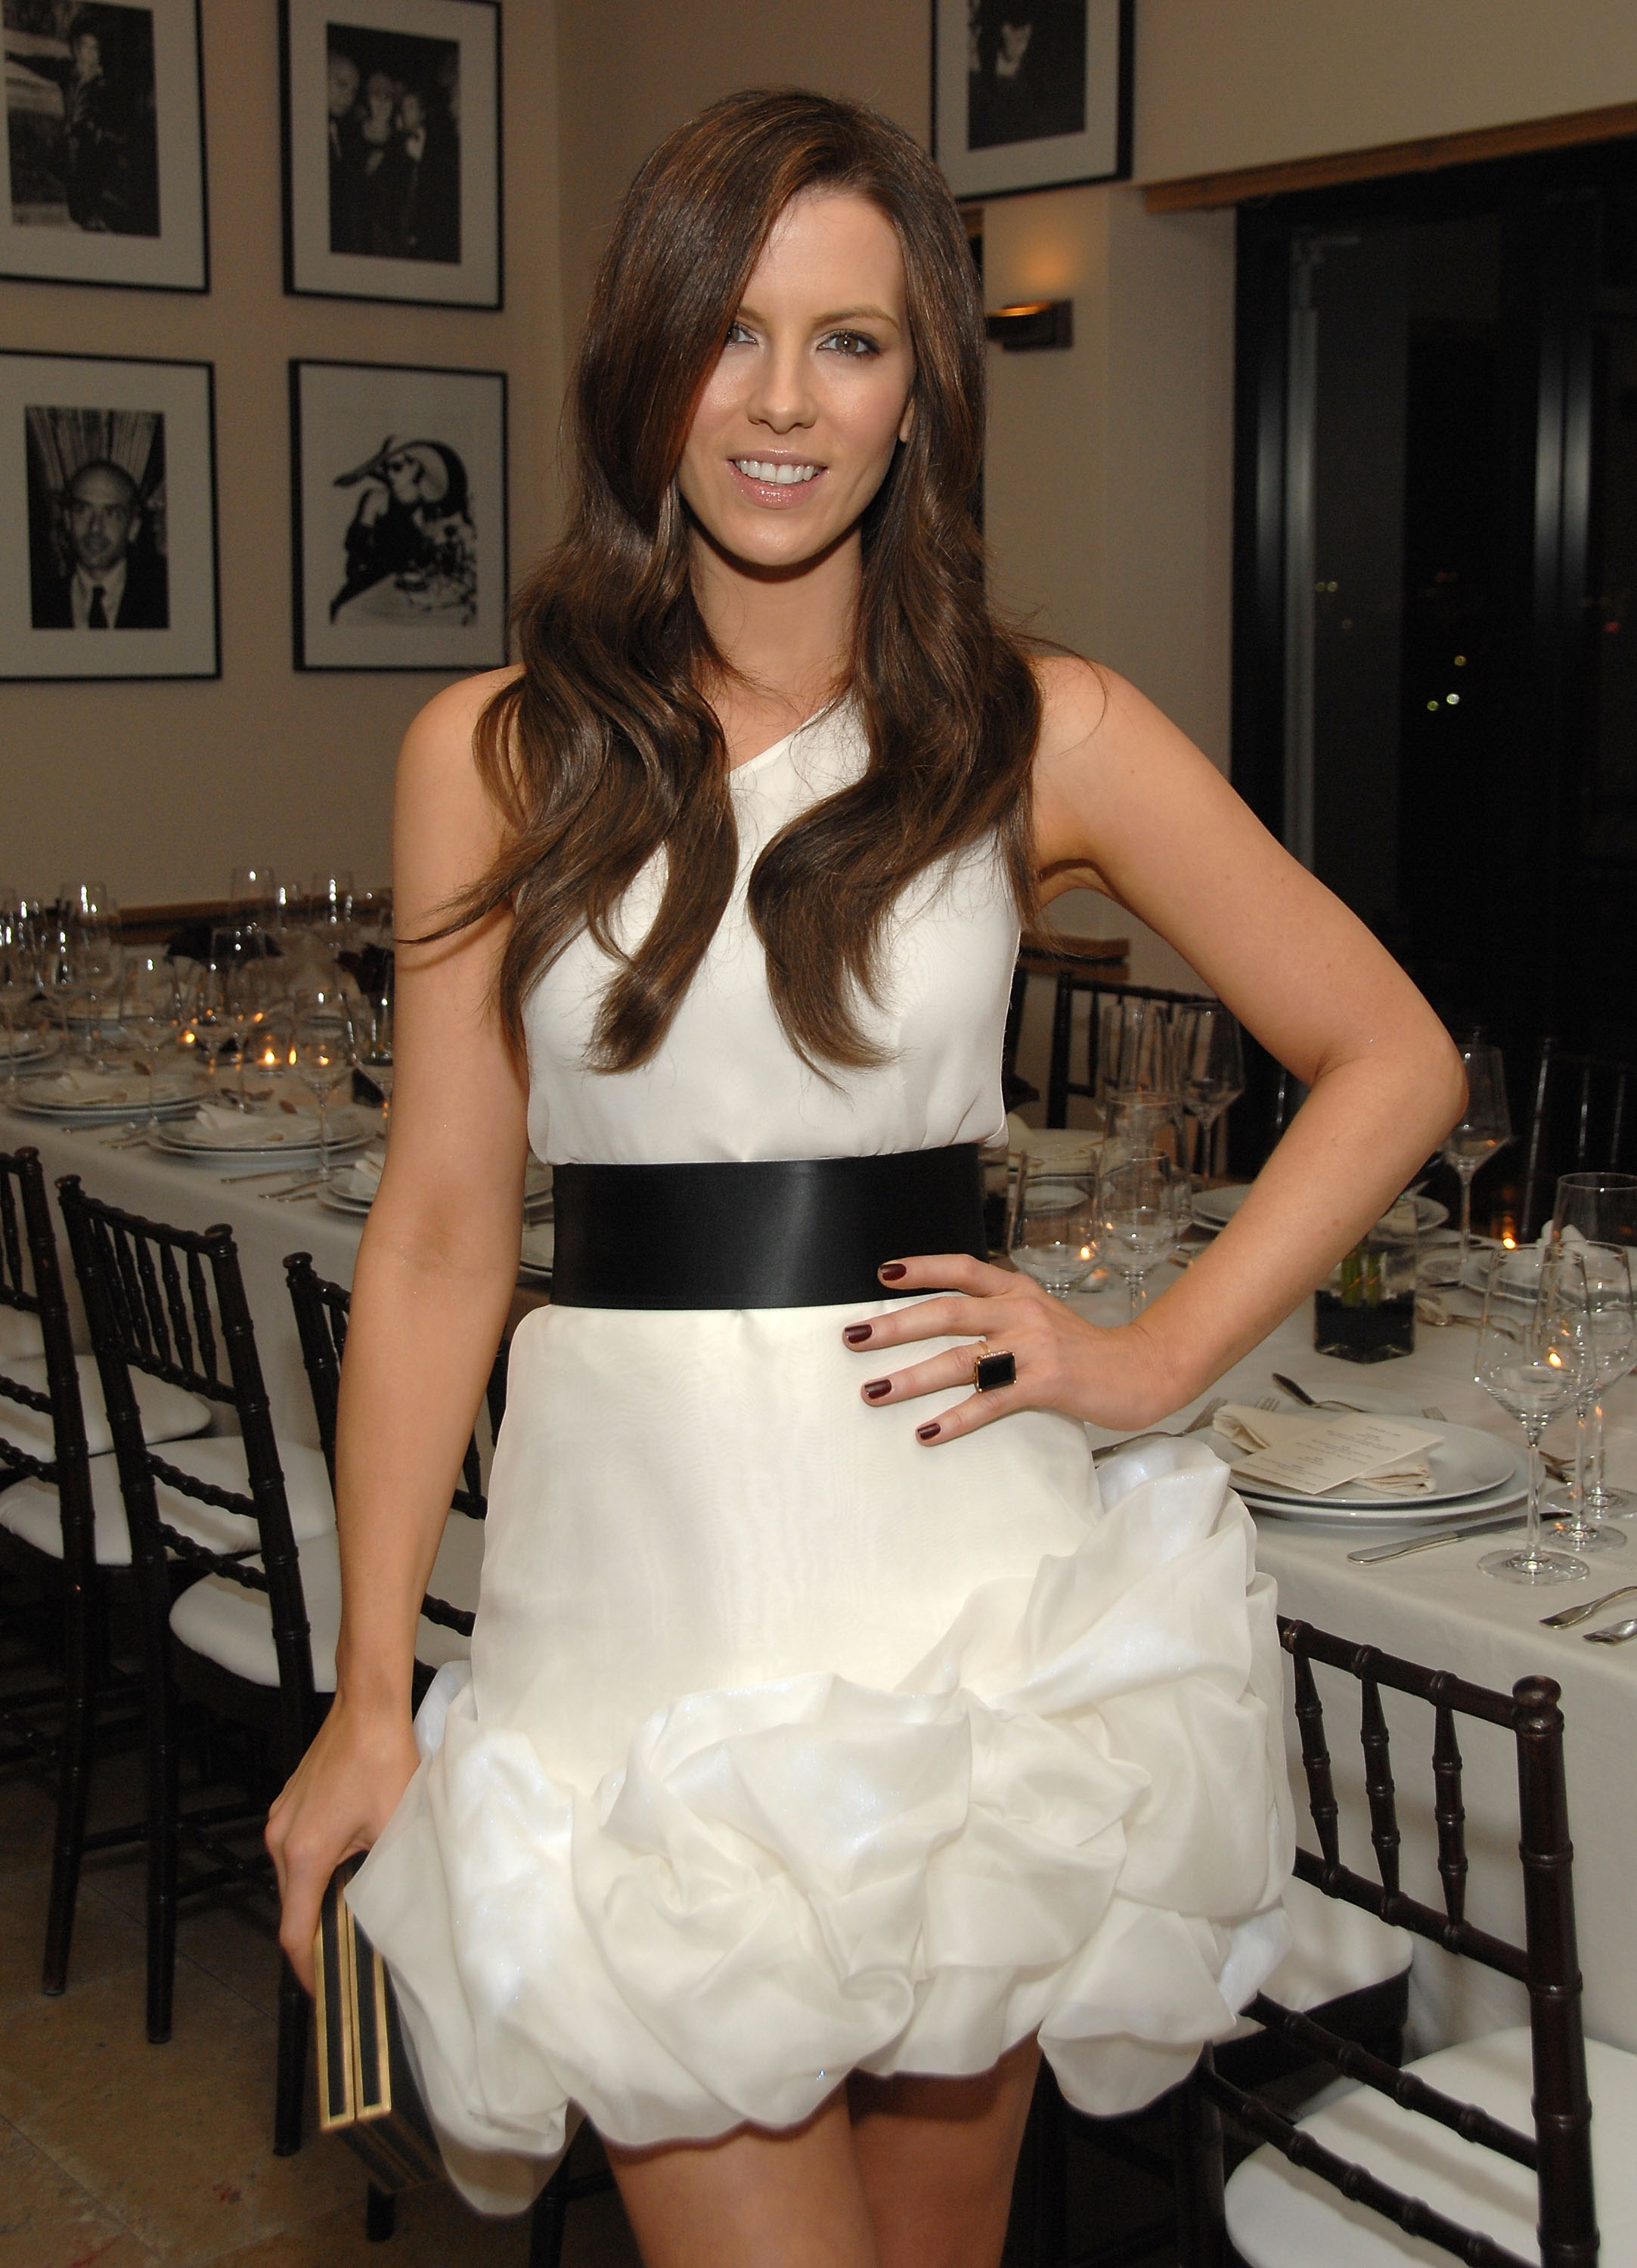 91485_Celebutopia-Kate_Beckinsale-R5Y_Augousti_and_Barneys_dinner_for_Nothing_But_The_Truth-01_122_439lo.jpg